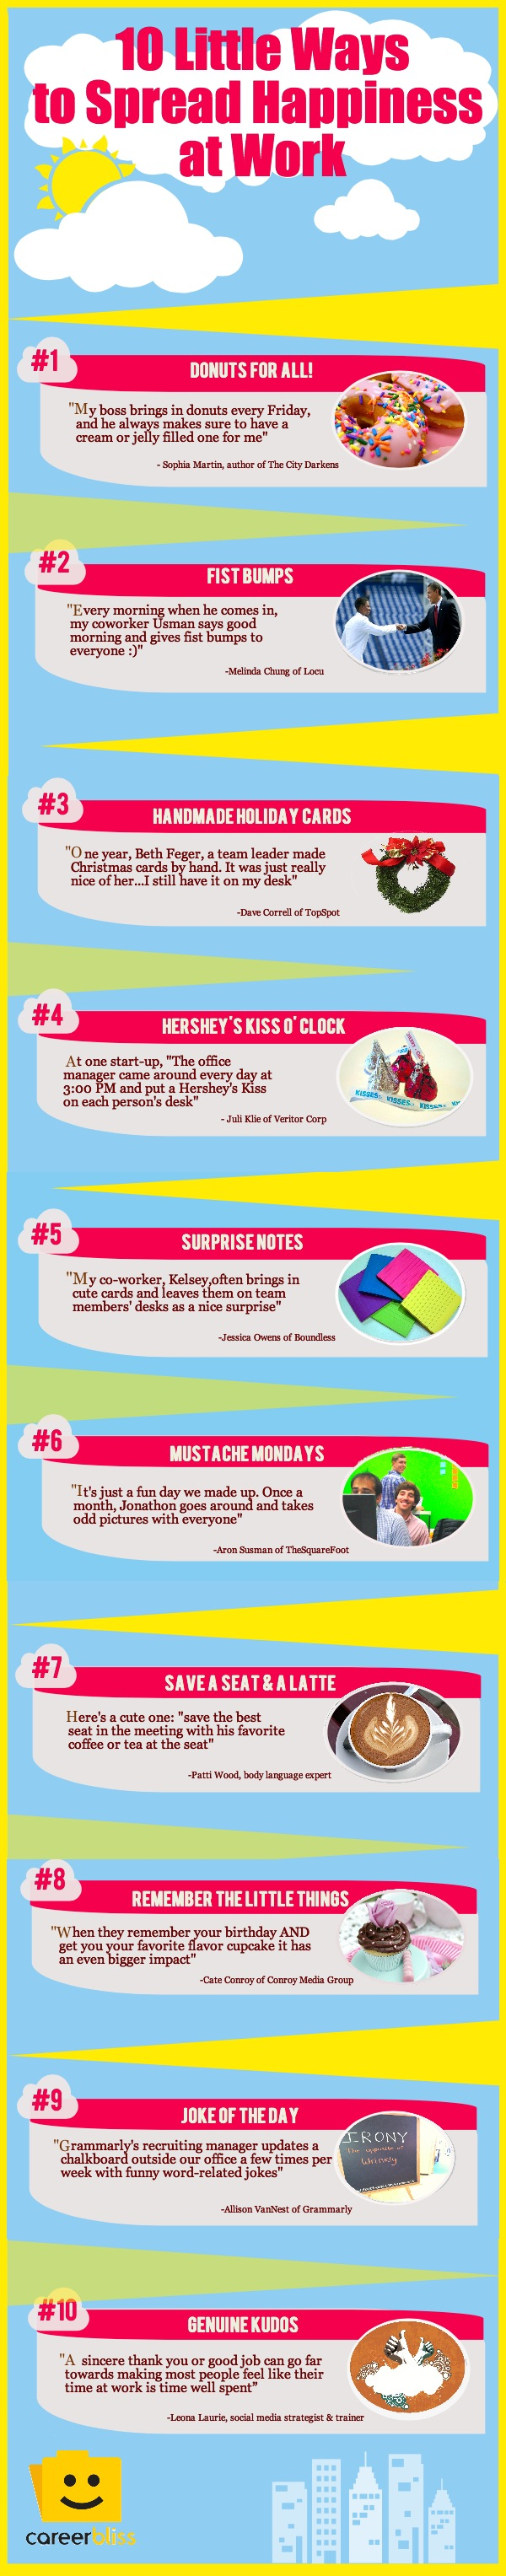 Workplace happiness infographic